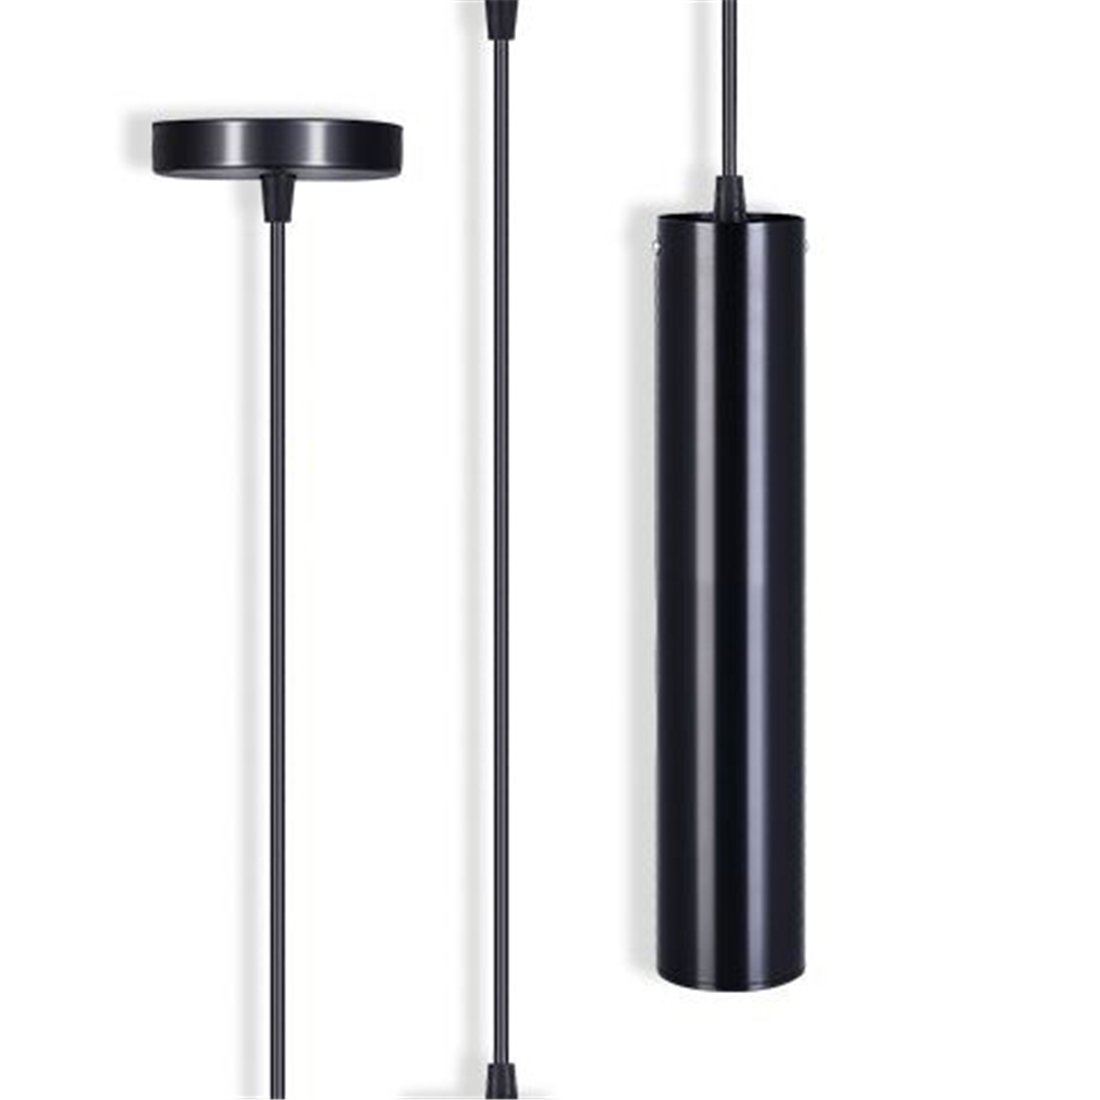 TOOGOO Black modern minimalist cafe chandeliers warm white led restaurant COB spotlights long tube hanging lamp bar table cylindrical mounted chandelier by Toogoo (Image #3)